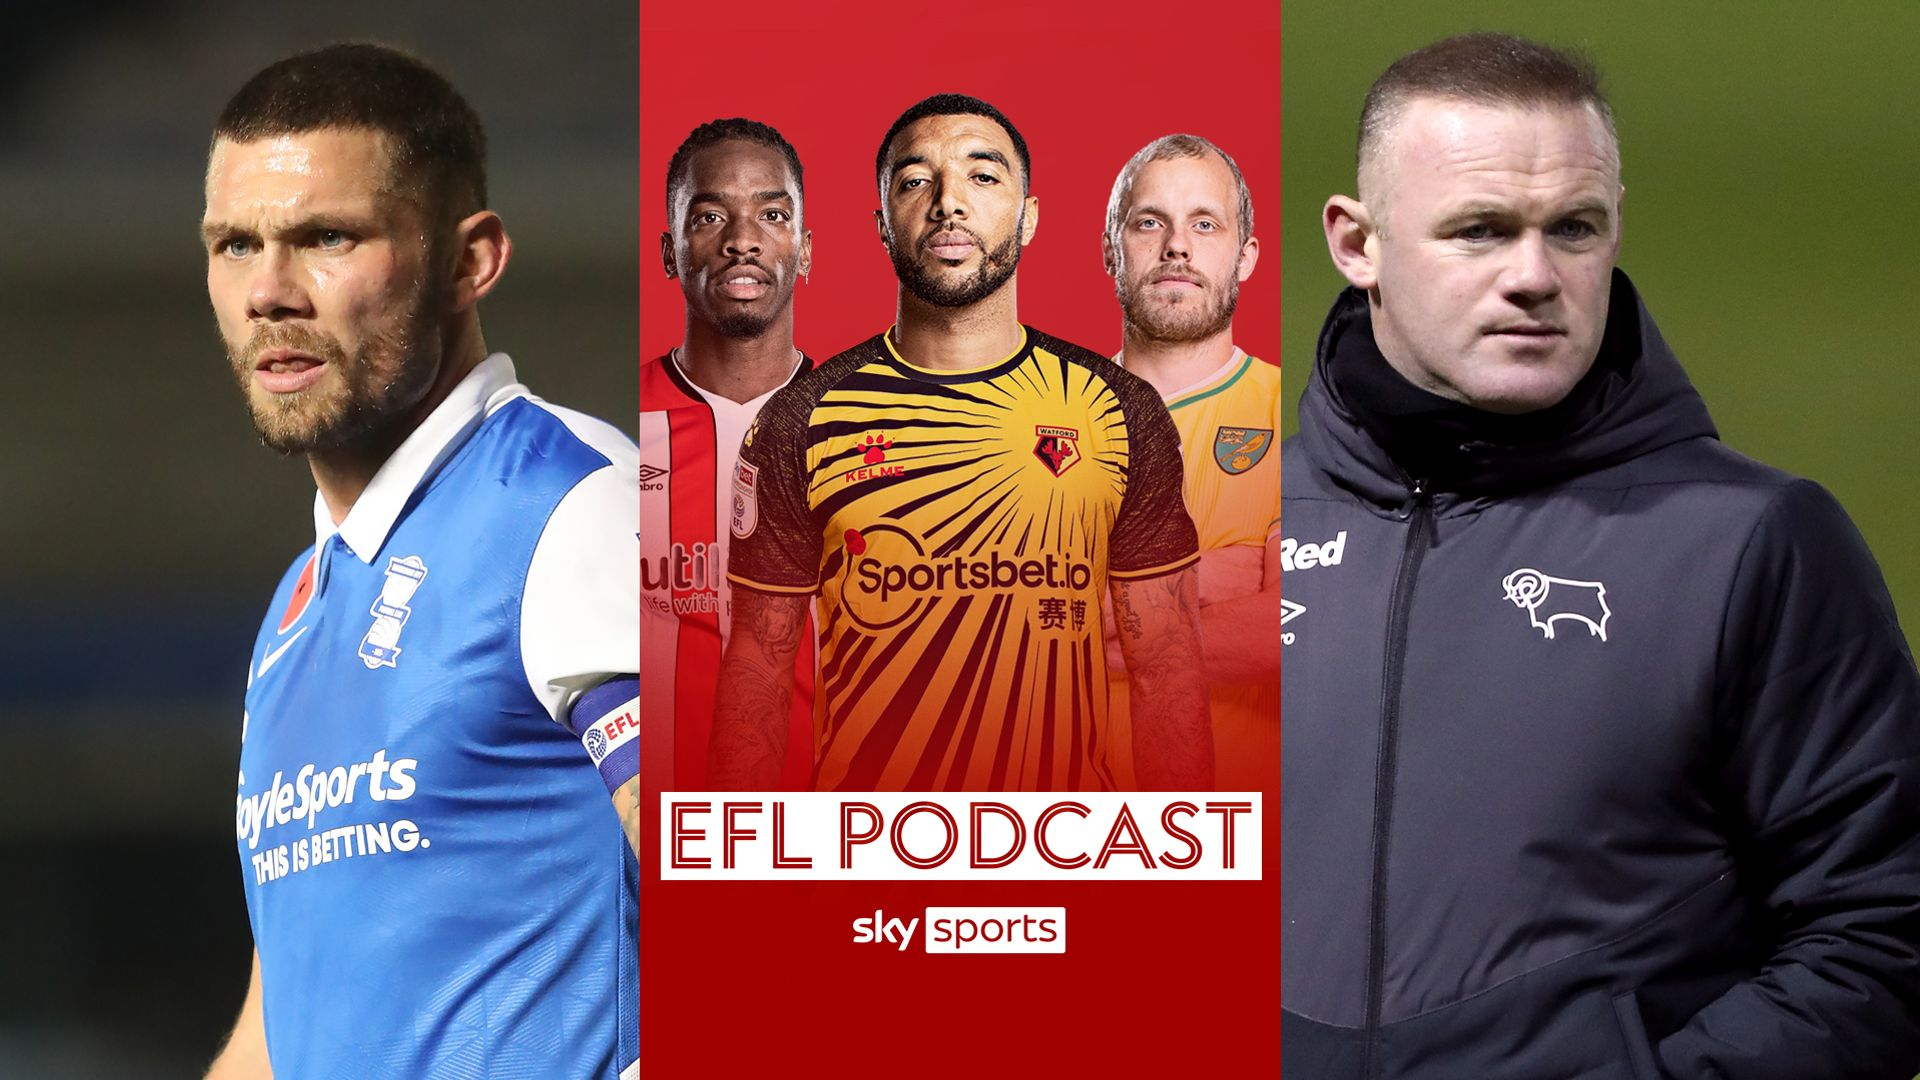 EFL Podcast: Rooney takes charge & Harlee's heroes